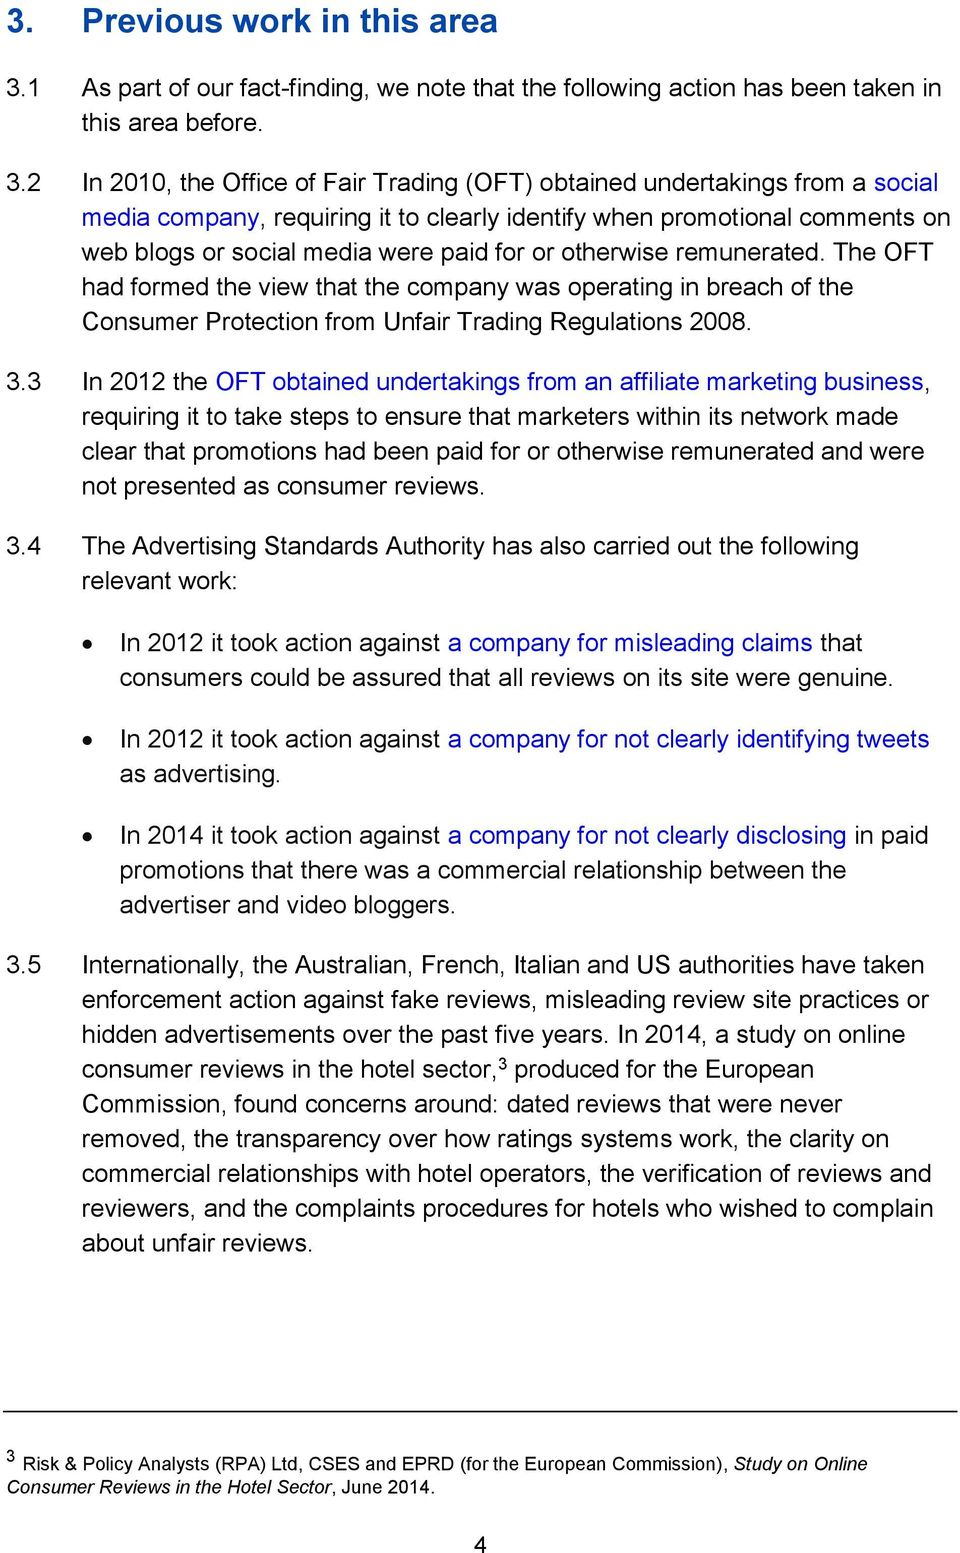 2 In 2010, the Office of Fair Trading (OFT) obtained undertakings from a social media company, requiring it to clearly identify when promotional comments on web blogs or social media were paid for or